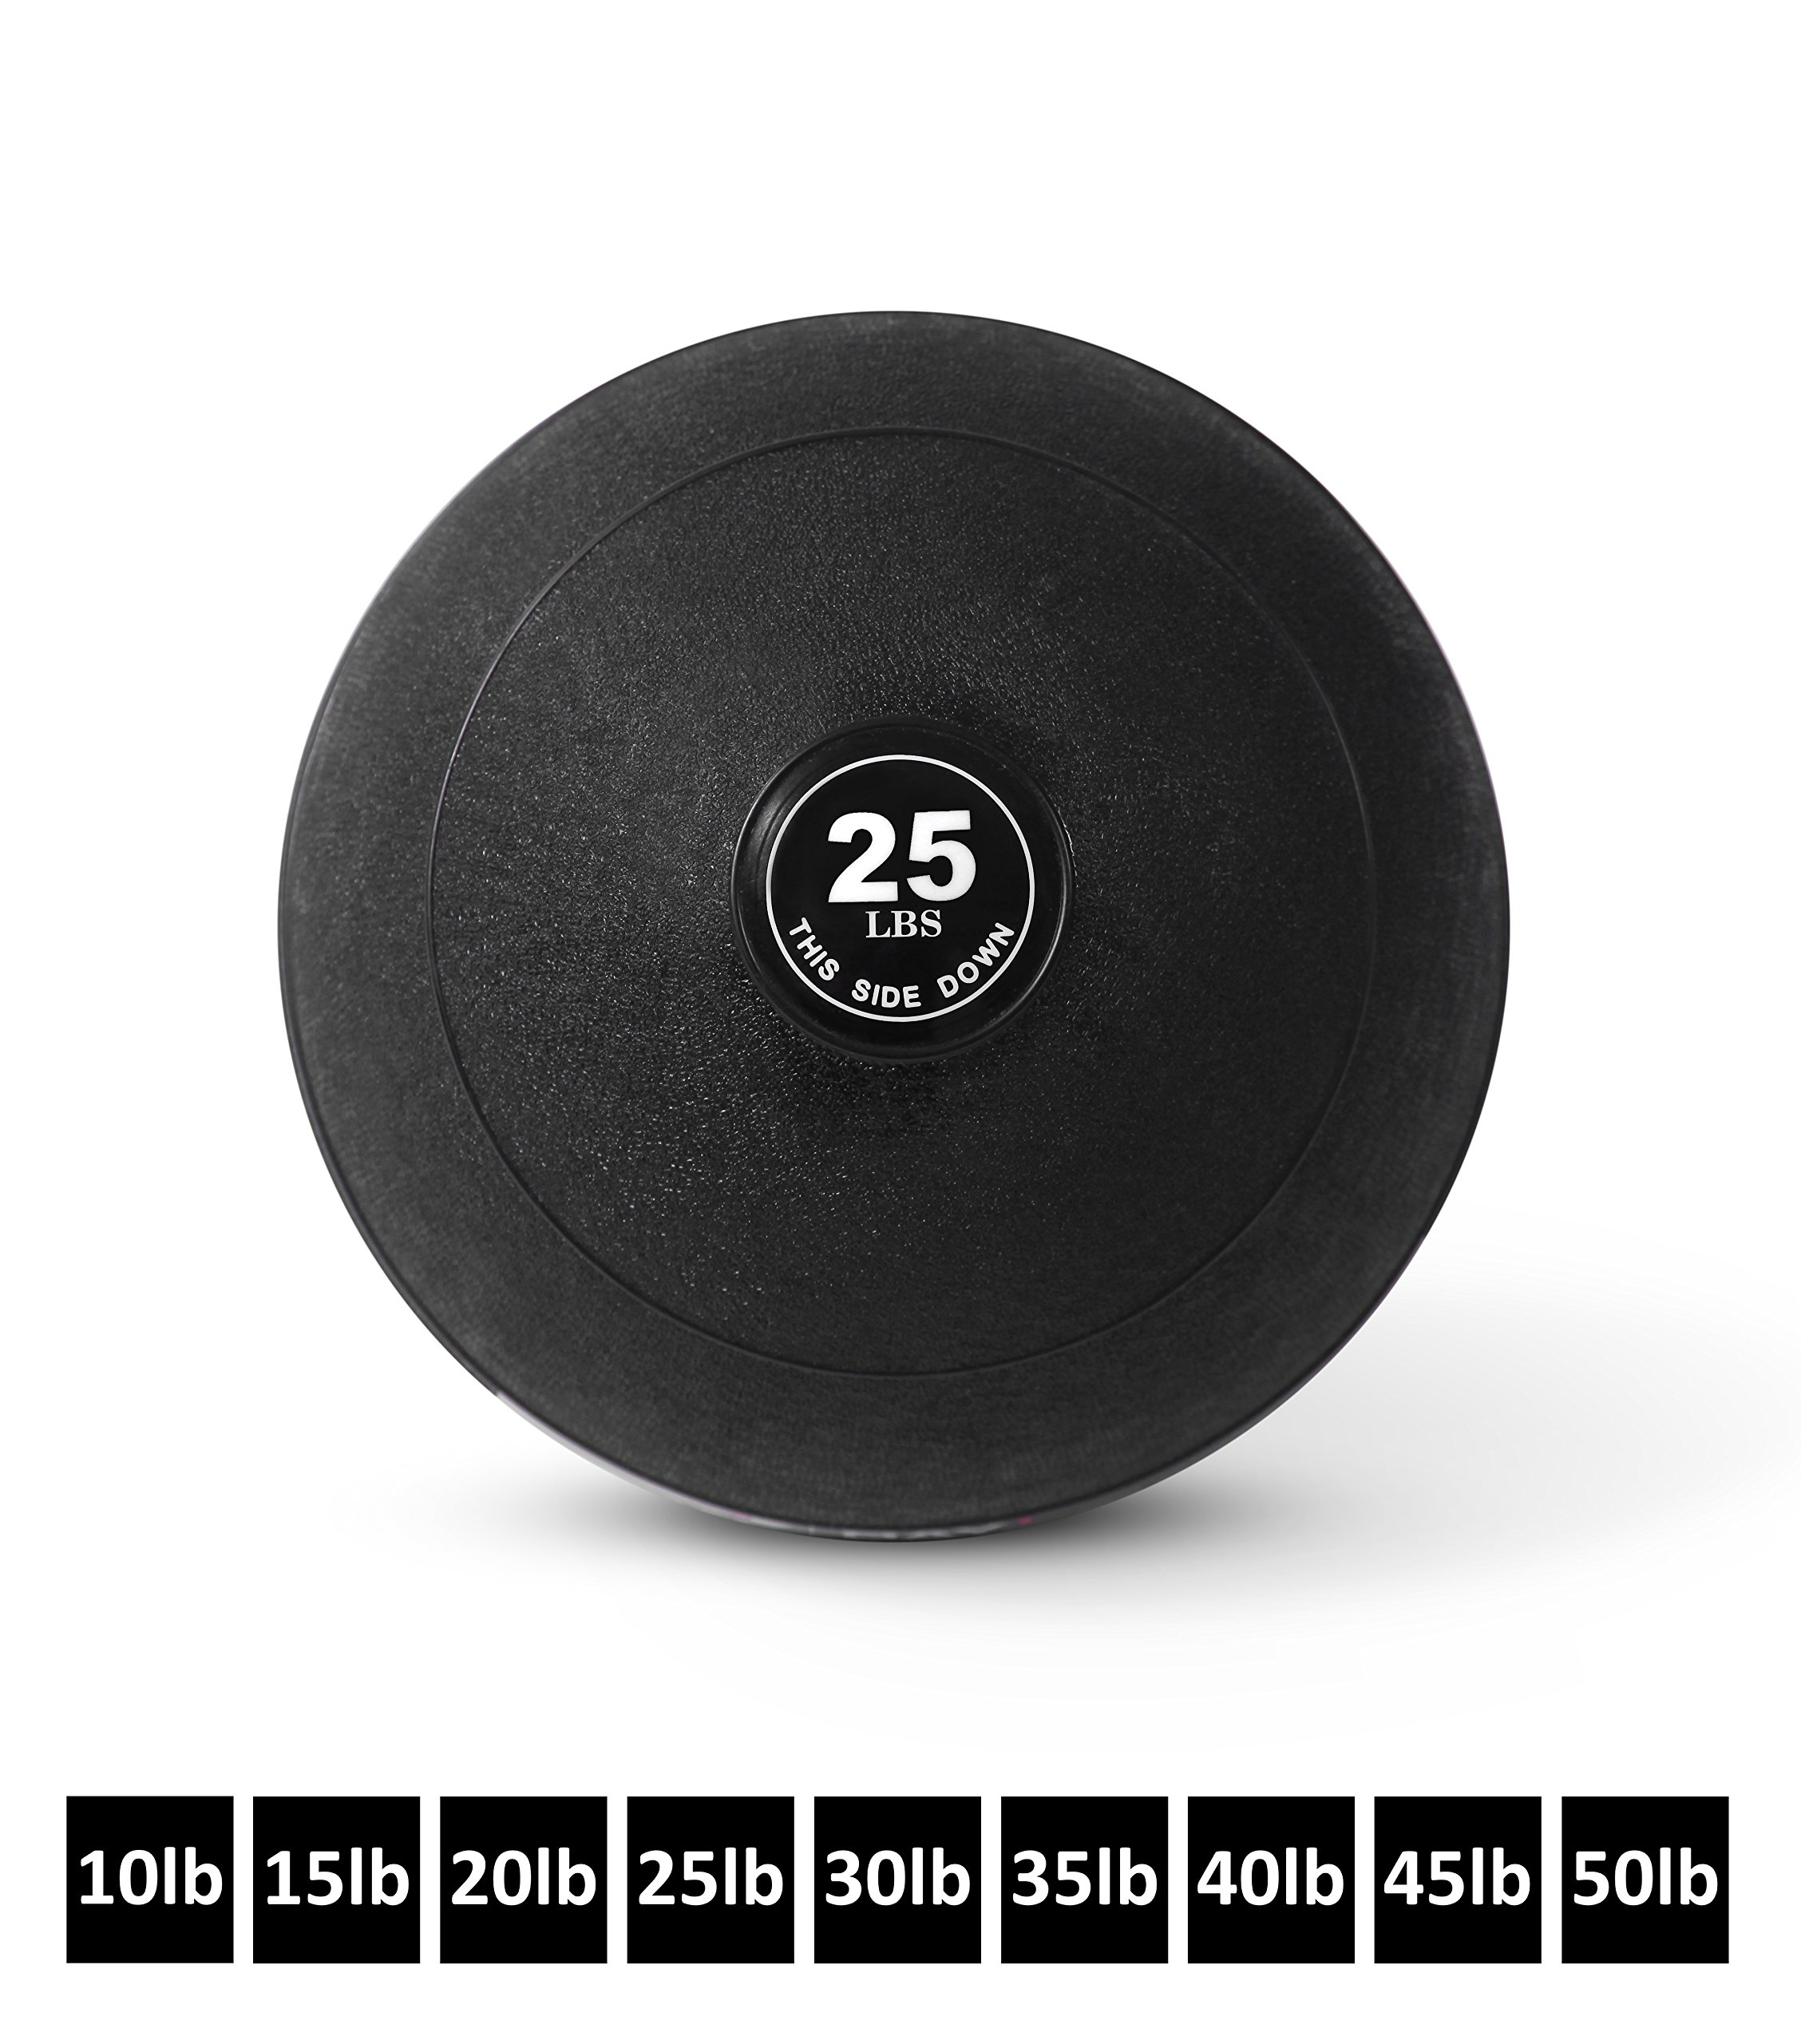 Weighted Slam Ball by Day 1 Fitness - 25 lbs - No Bounce Medicine Ball - Gym Equipment Accessories for High Intensity Exercise, Functional Strength Training, Cardio, CrossFit